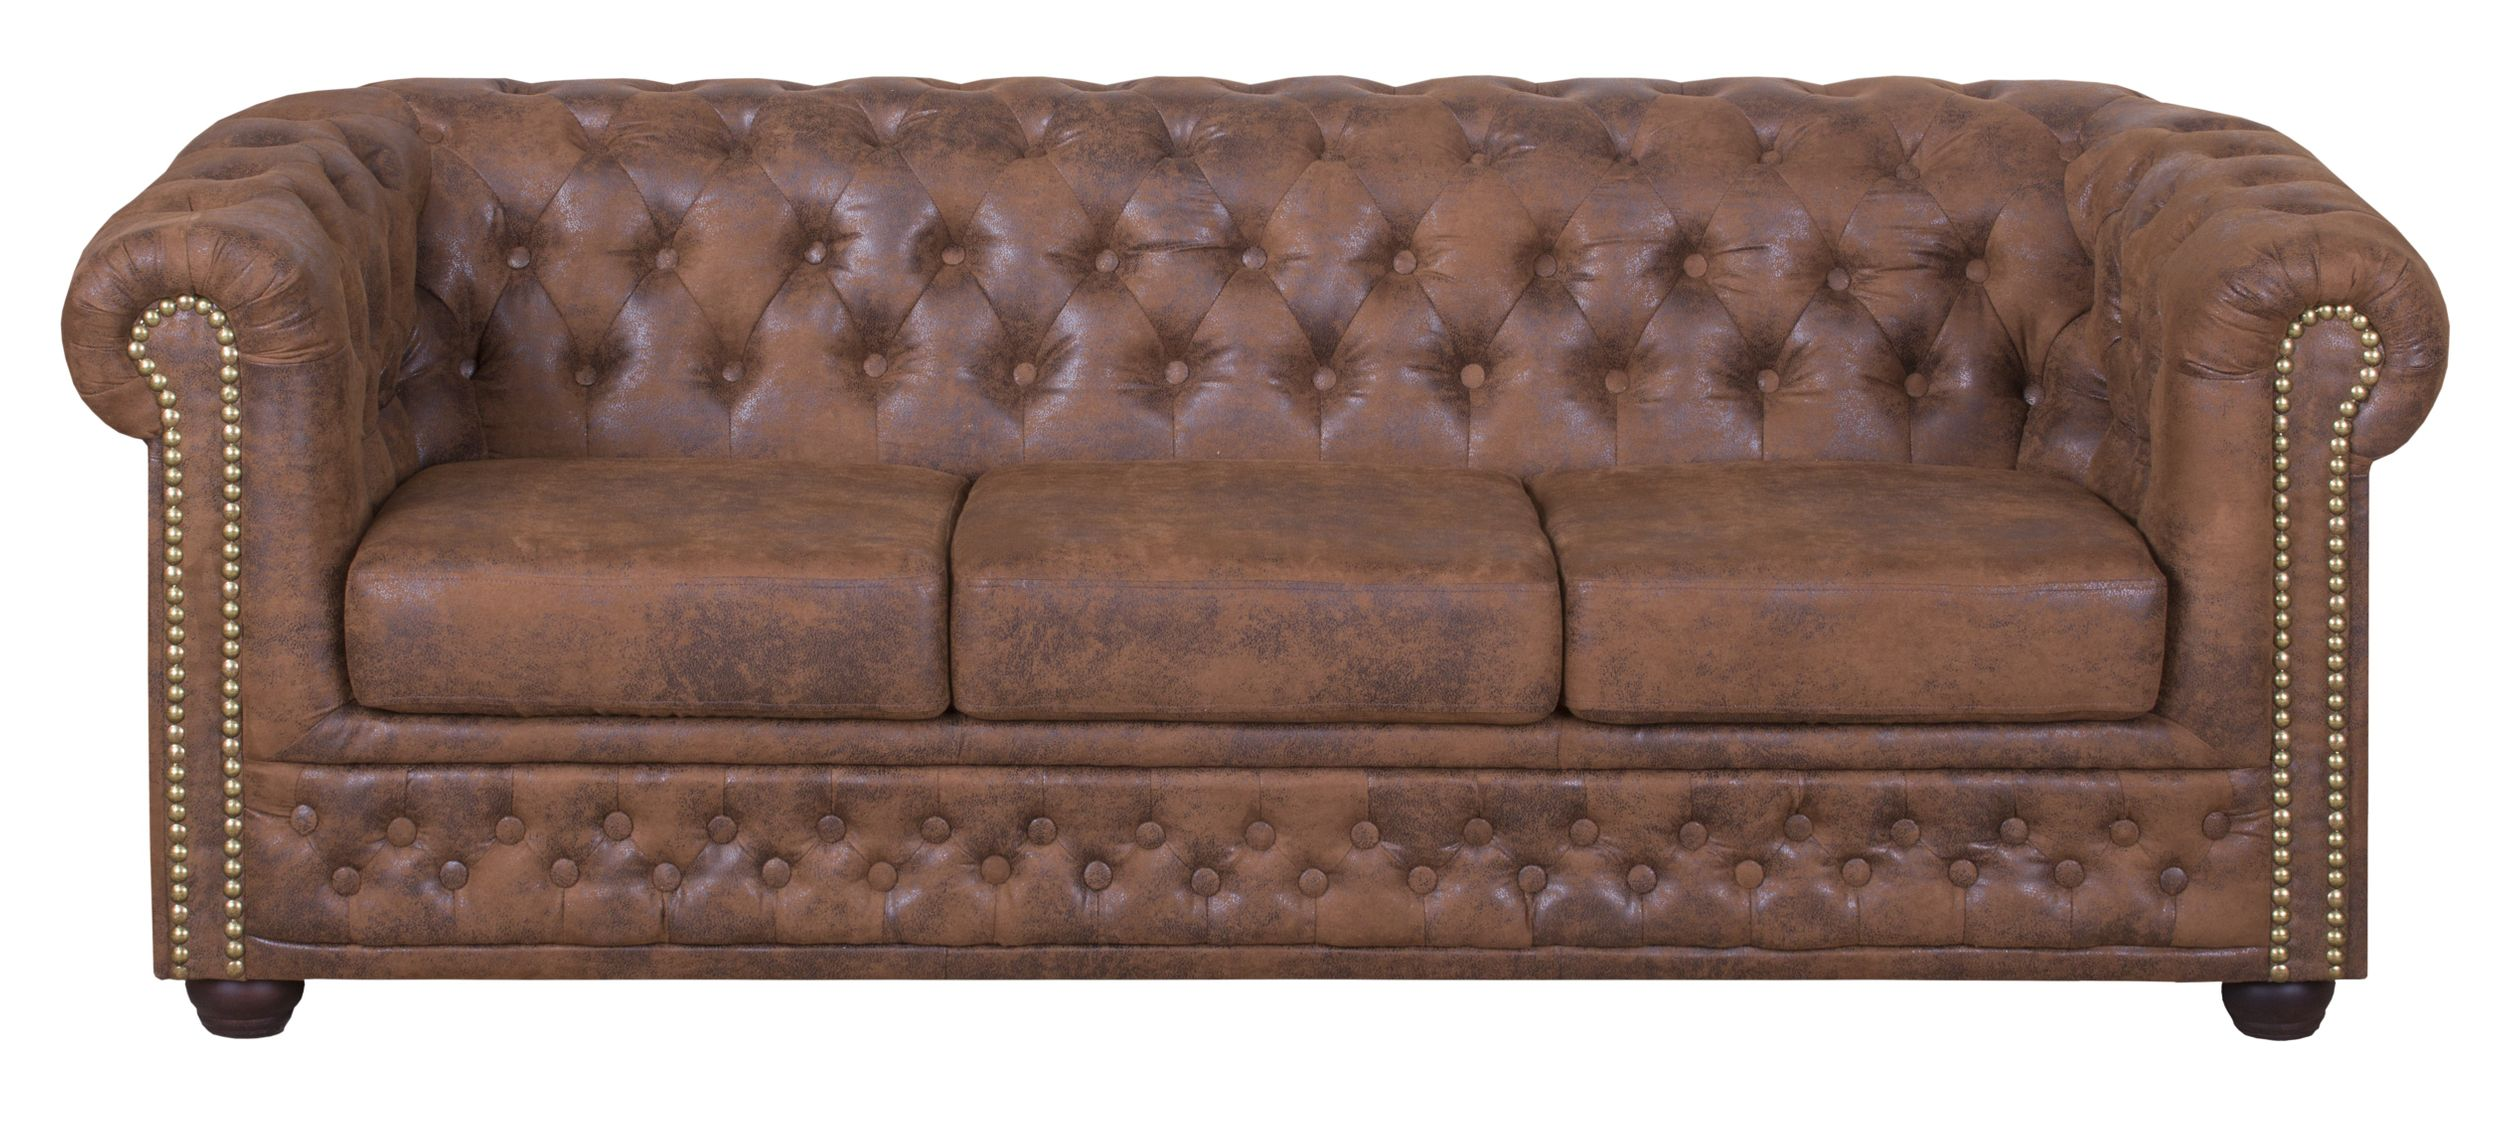 edles chesterfield sofa 3 sitzer in mikrofaser vintage braun couch polstersofa polsterm bel sofa. Black Bedroom Furniture Sets. Home Design Ideas